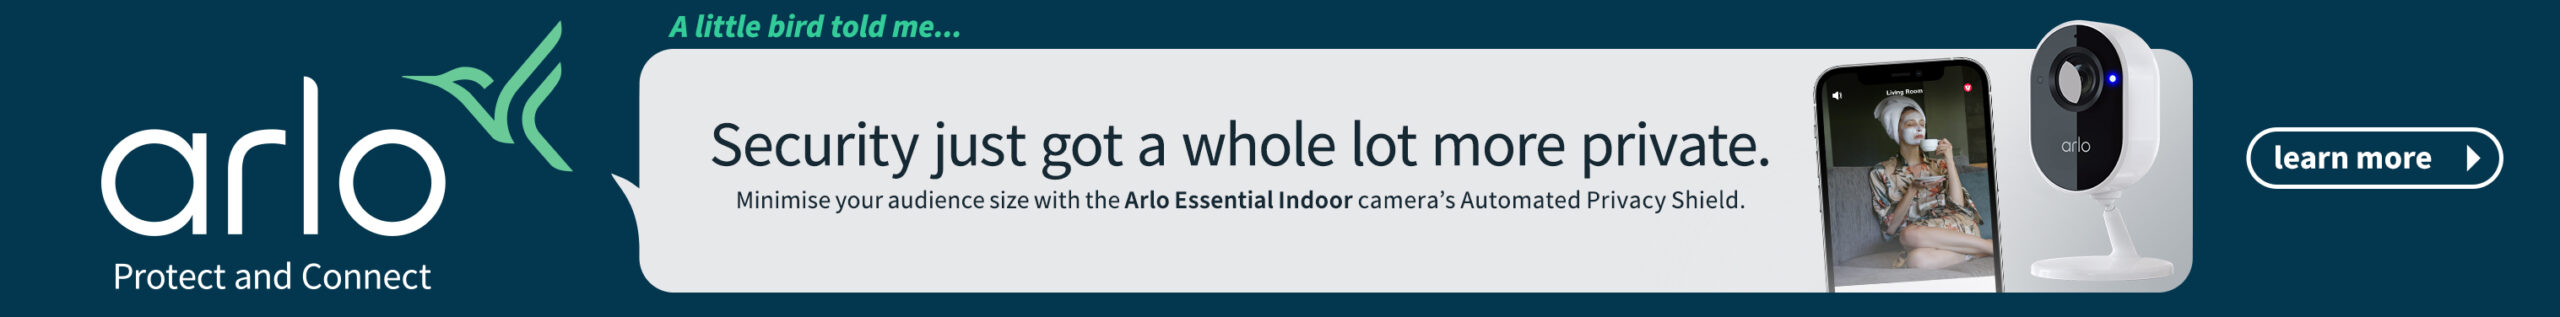 ARL0355 Arlo ESS Indoor Generic Banner 728x90 V4 scaled REVIEW: Its A Persuasive Package But Willl LGs Smaller Screen FPR Tech TV Grab Viewer Appeal?